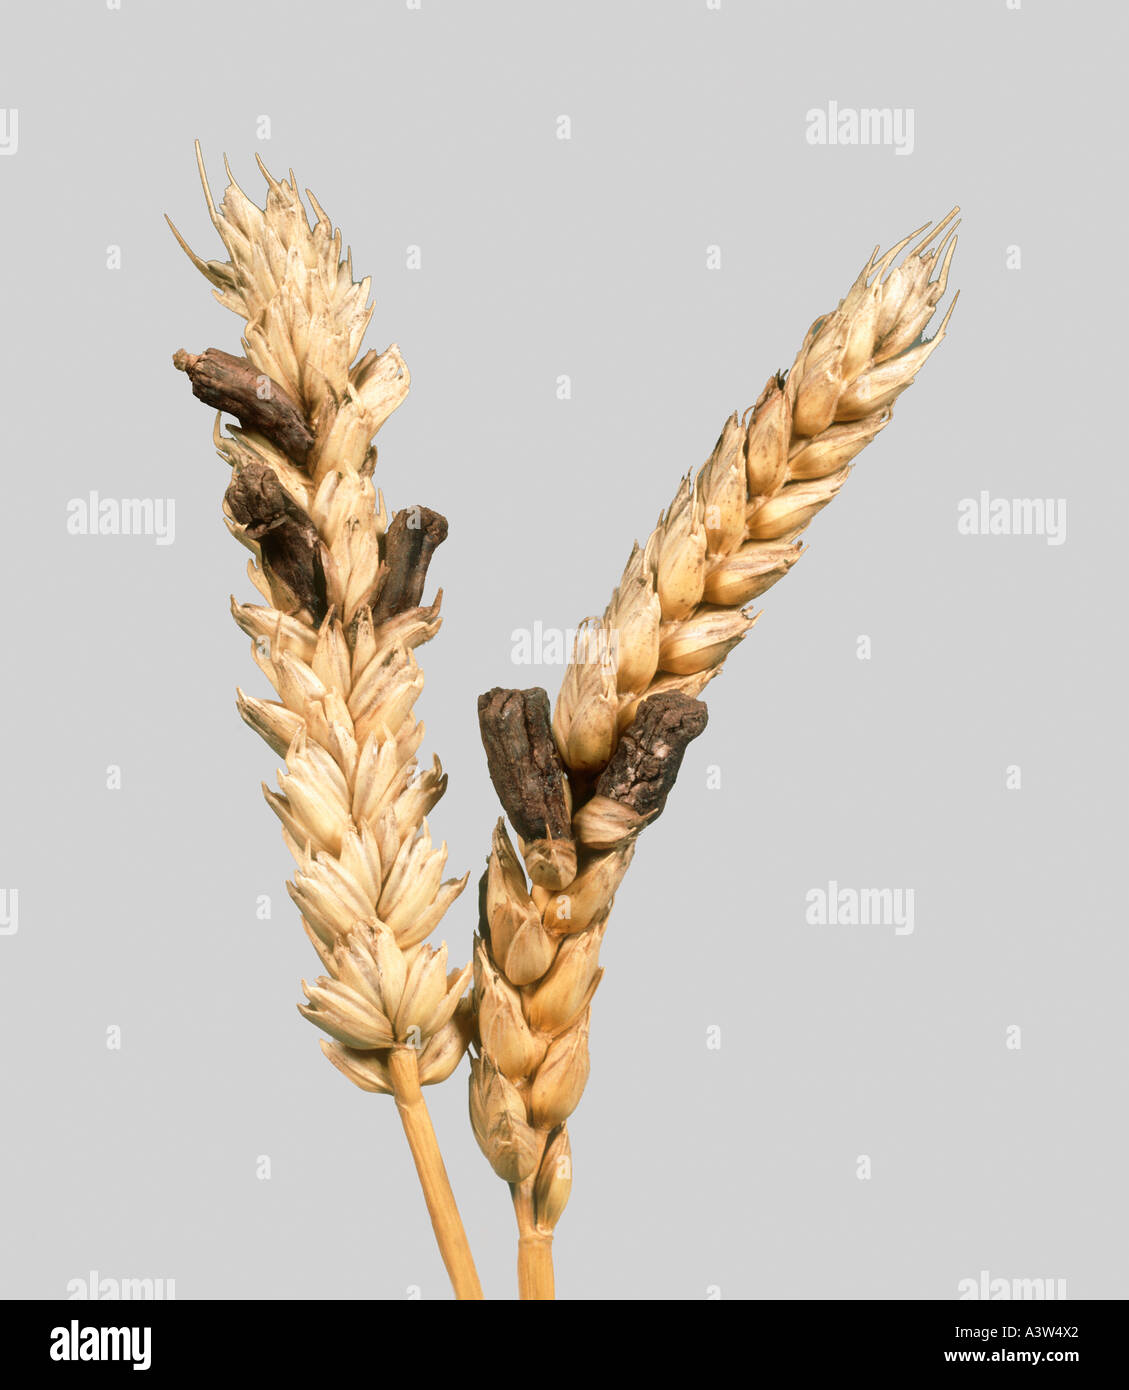 ergot claviceps purpurea replacing grains in a ripe wheat ear stock photo 6206625 alamy. Black Bedroom Furniture Sets. Home Design Ideas